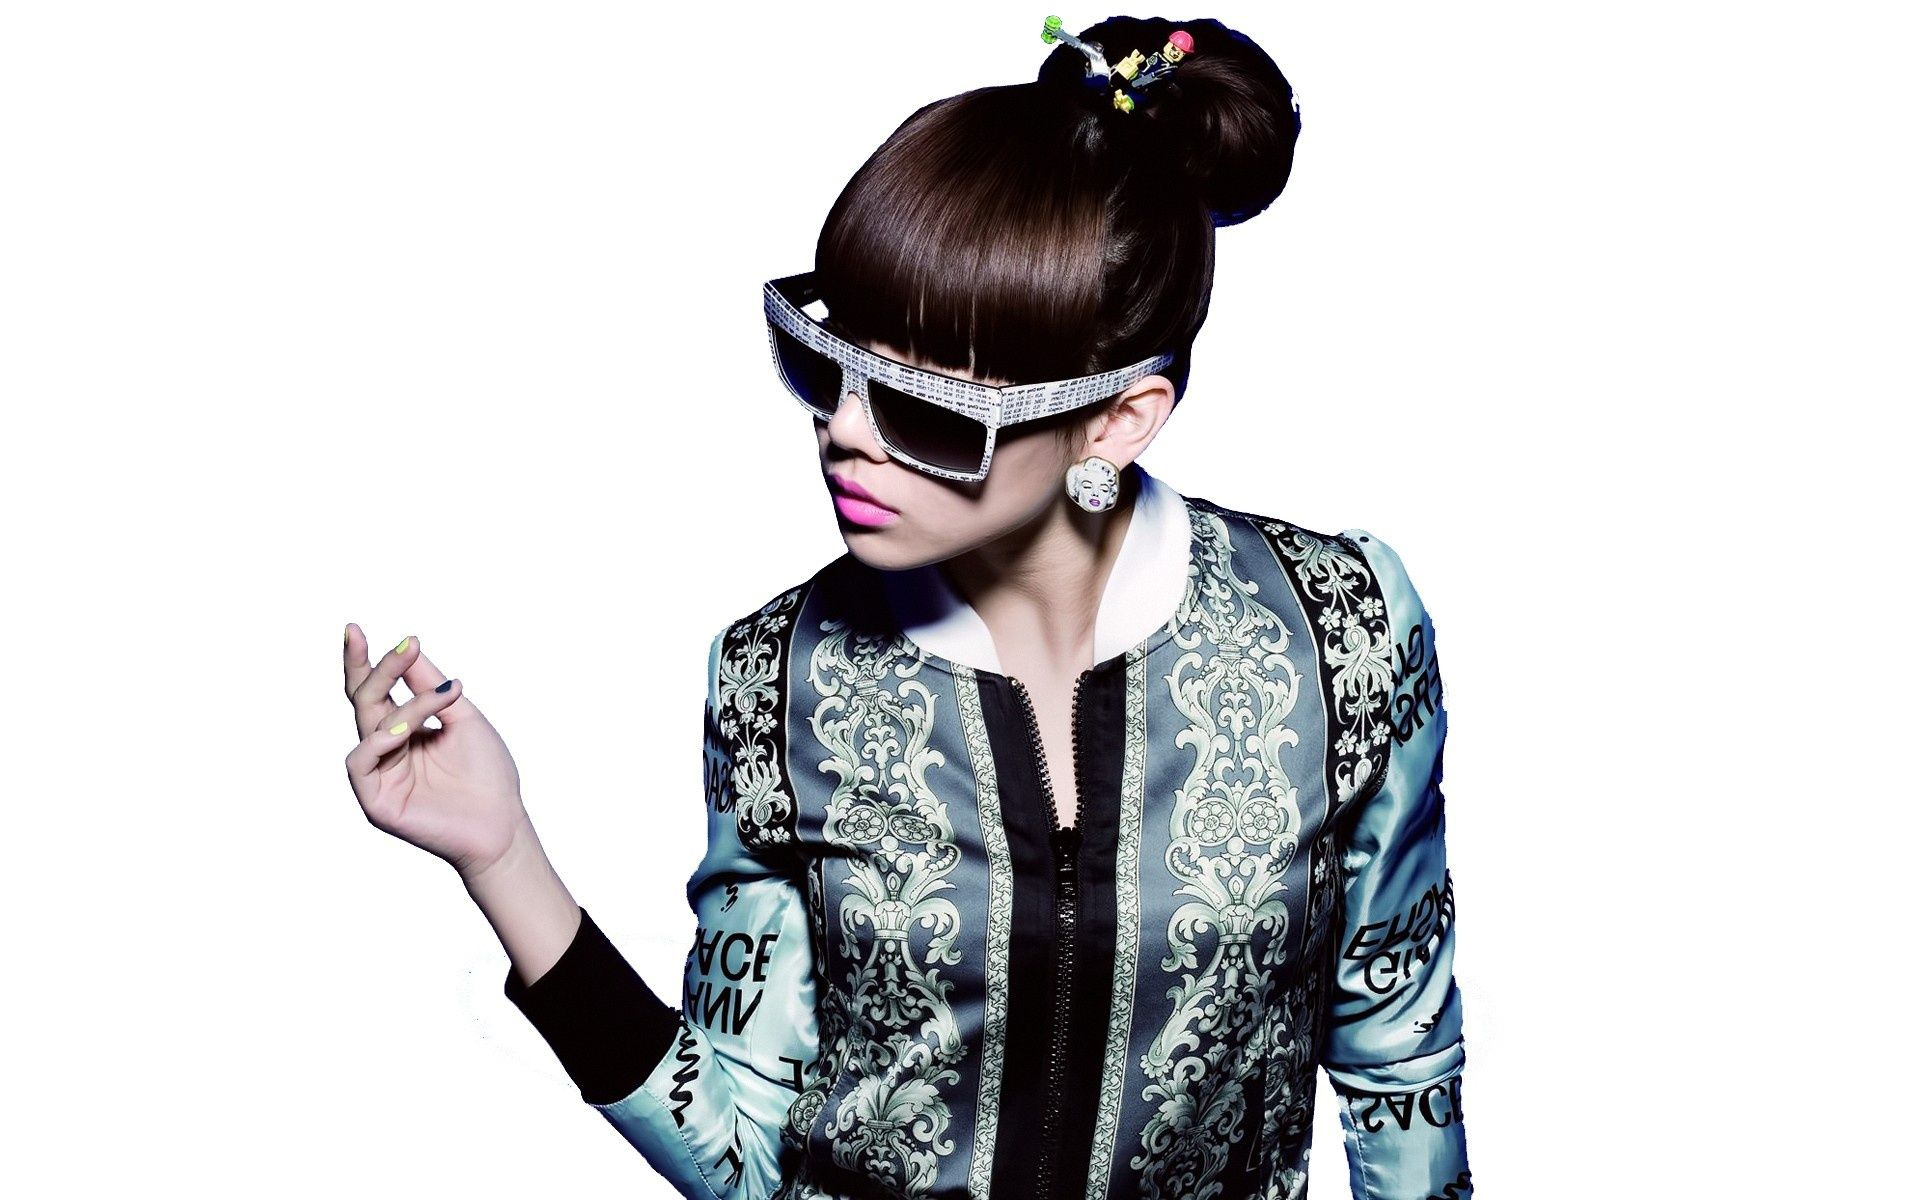 CL 2NE1 LEADER HD Wallpaper - http://1sthdwallpapers.com/cl-2ne1-leader-hd-wallpapers/